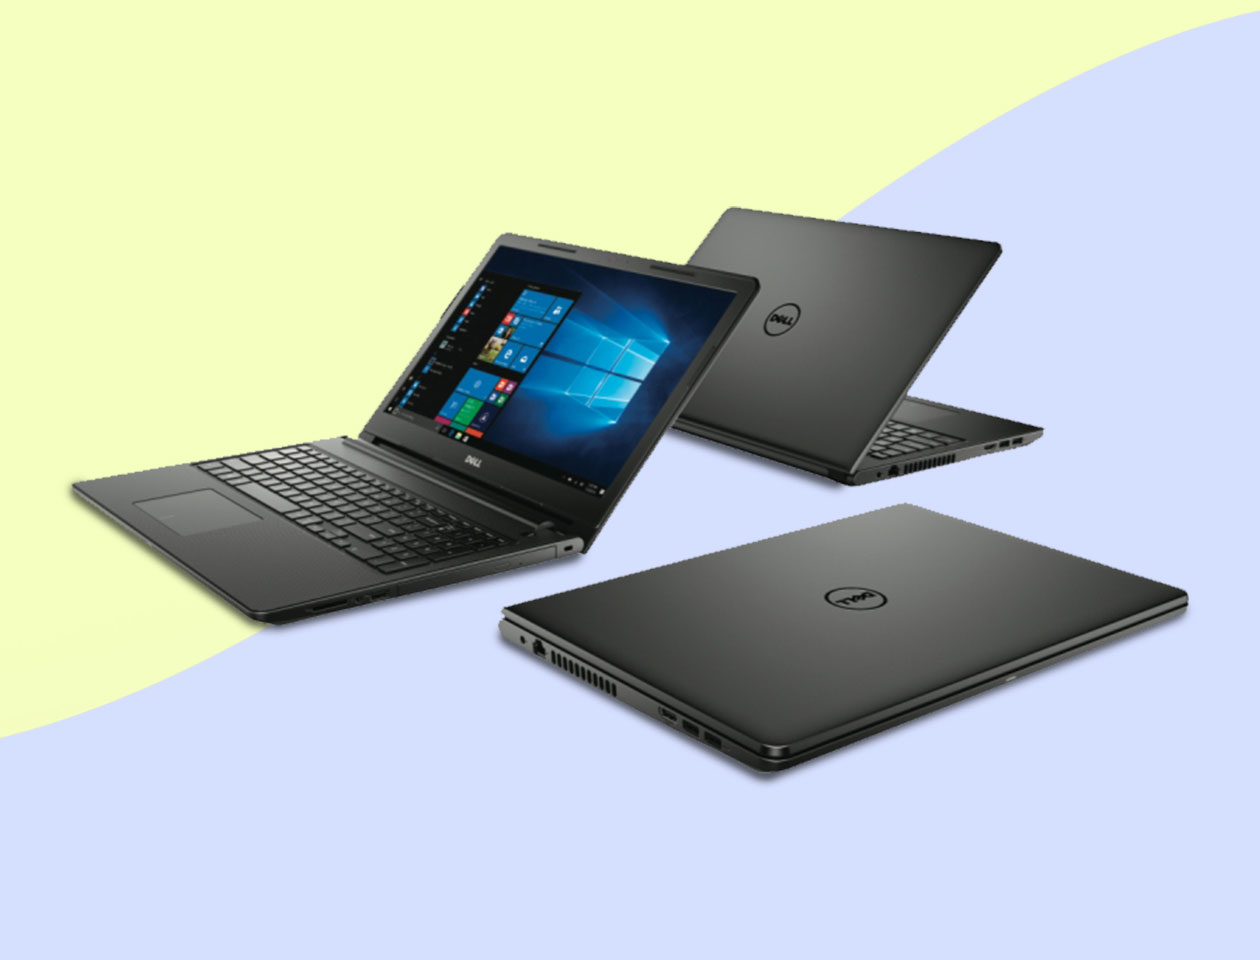 Here're Some Basic Features and Specs of Dell Inspiron 15 3000